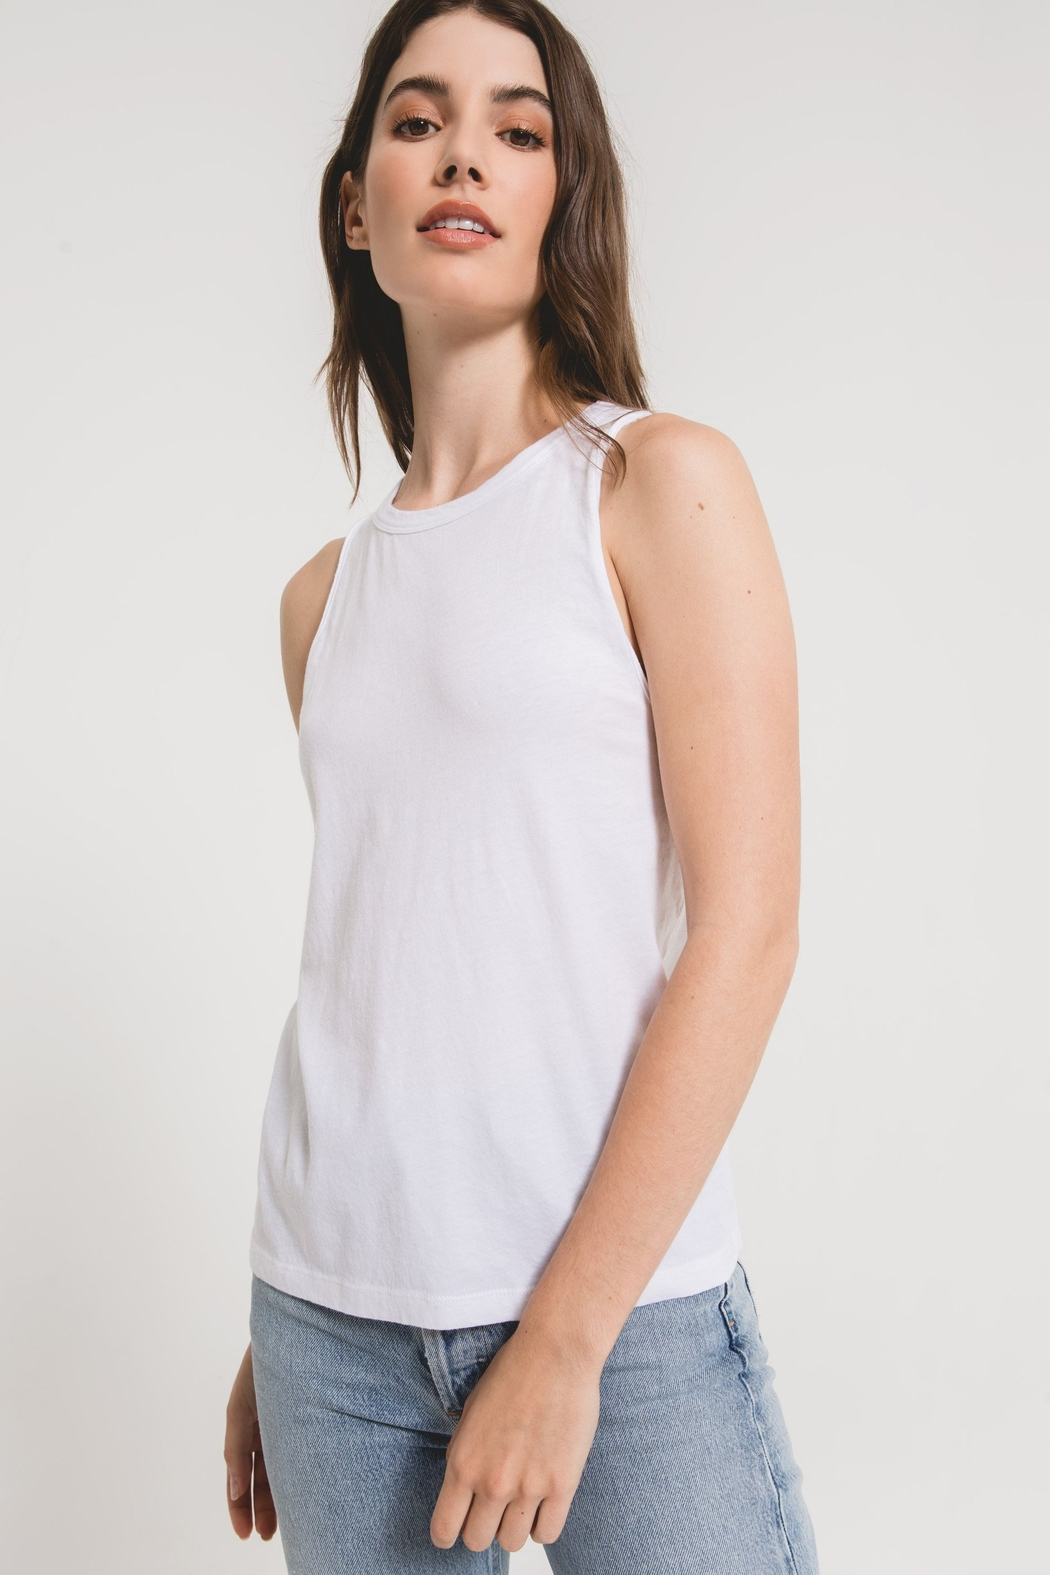 z supply Organic Cotton Muscle Tank - Front Cropped Image